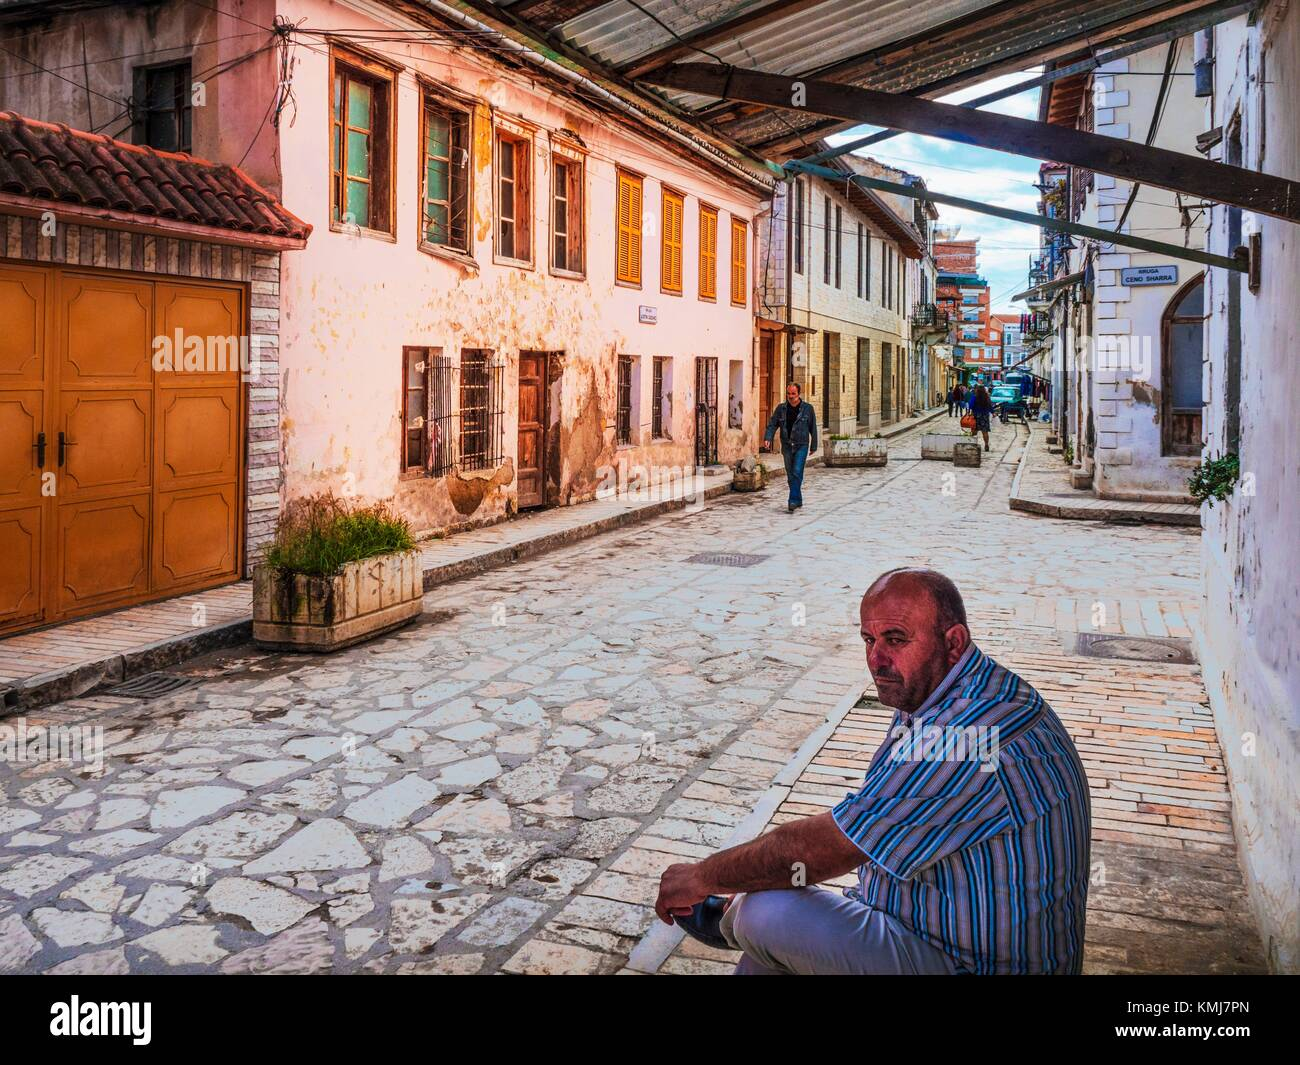 Albania, Vlorë, Justin Godard street, named after the freench Senator who came and support the Independance - Stock Image